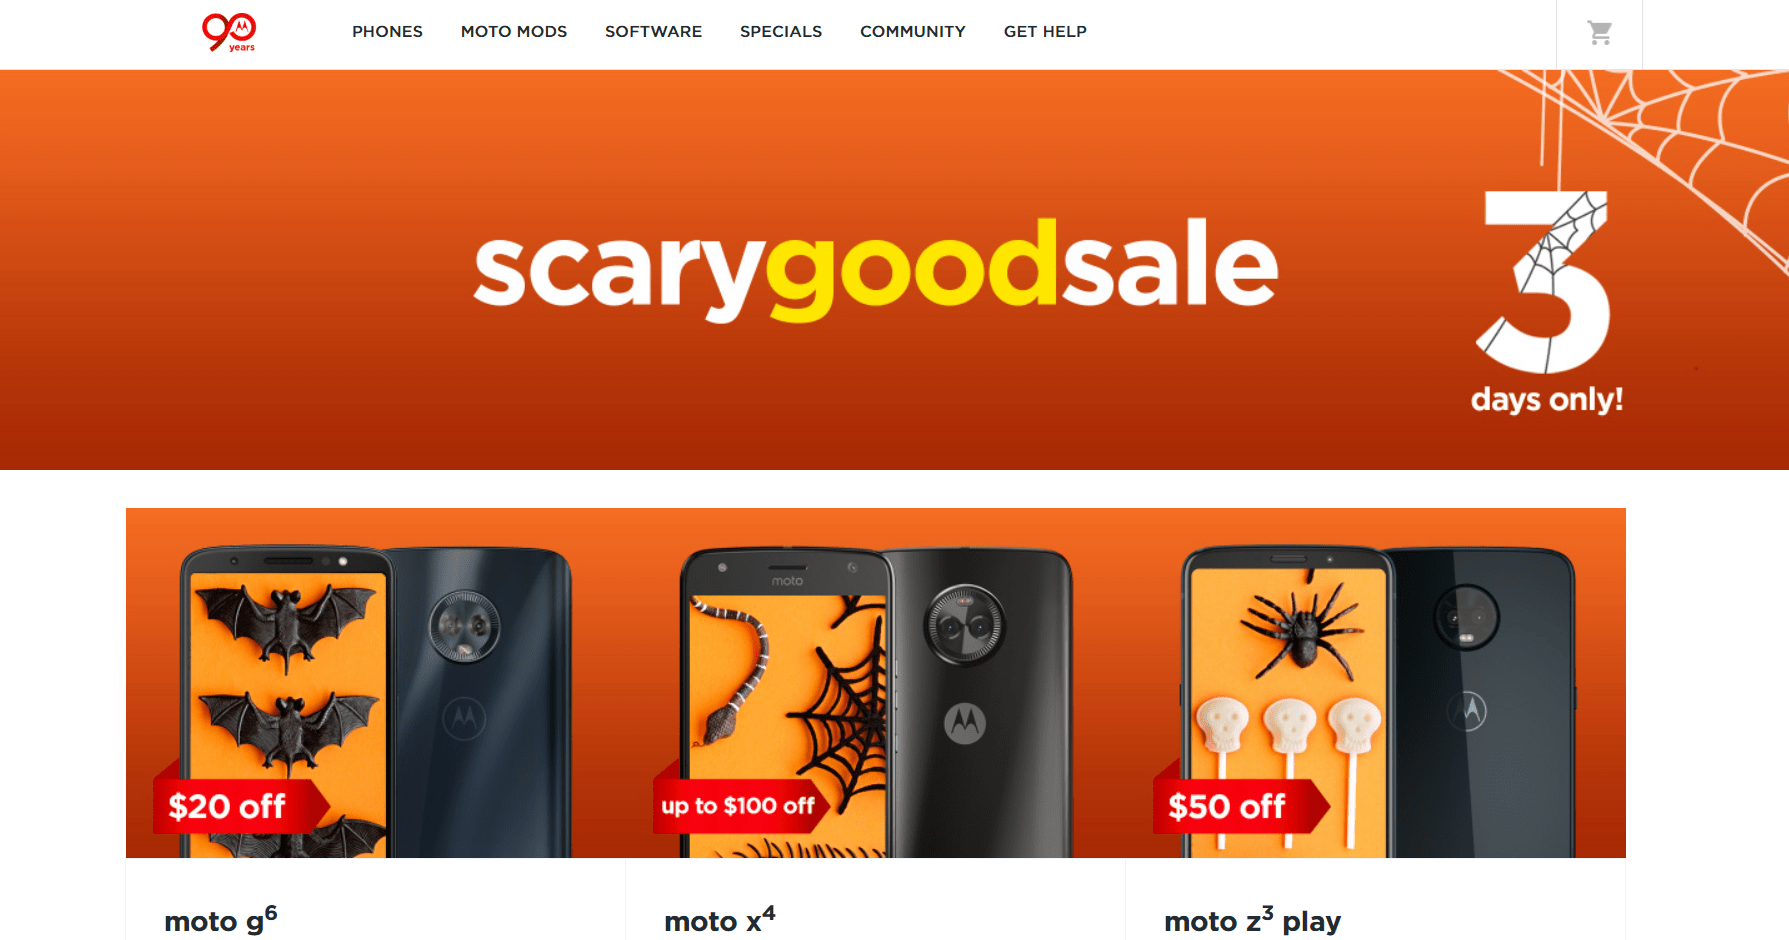 Motorola puts up some scary good deals for Halloween